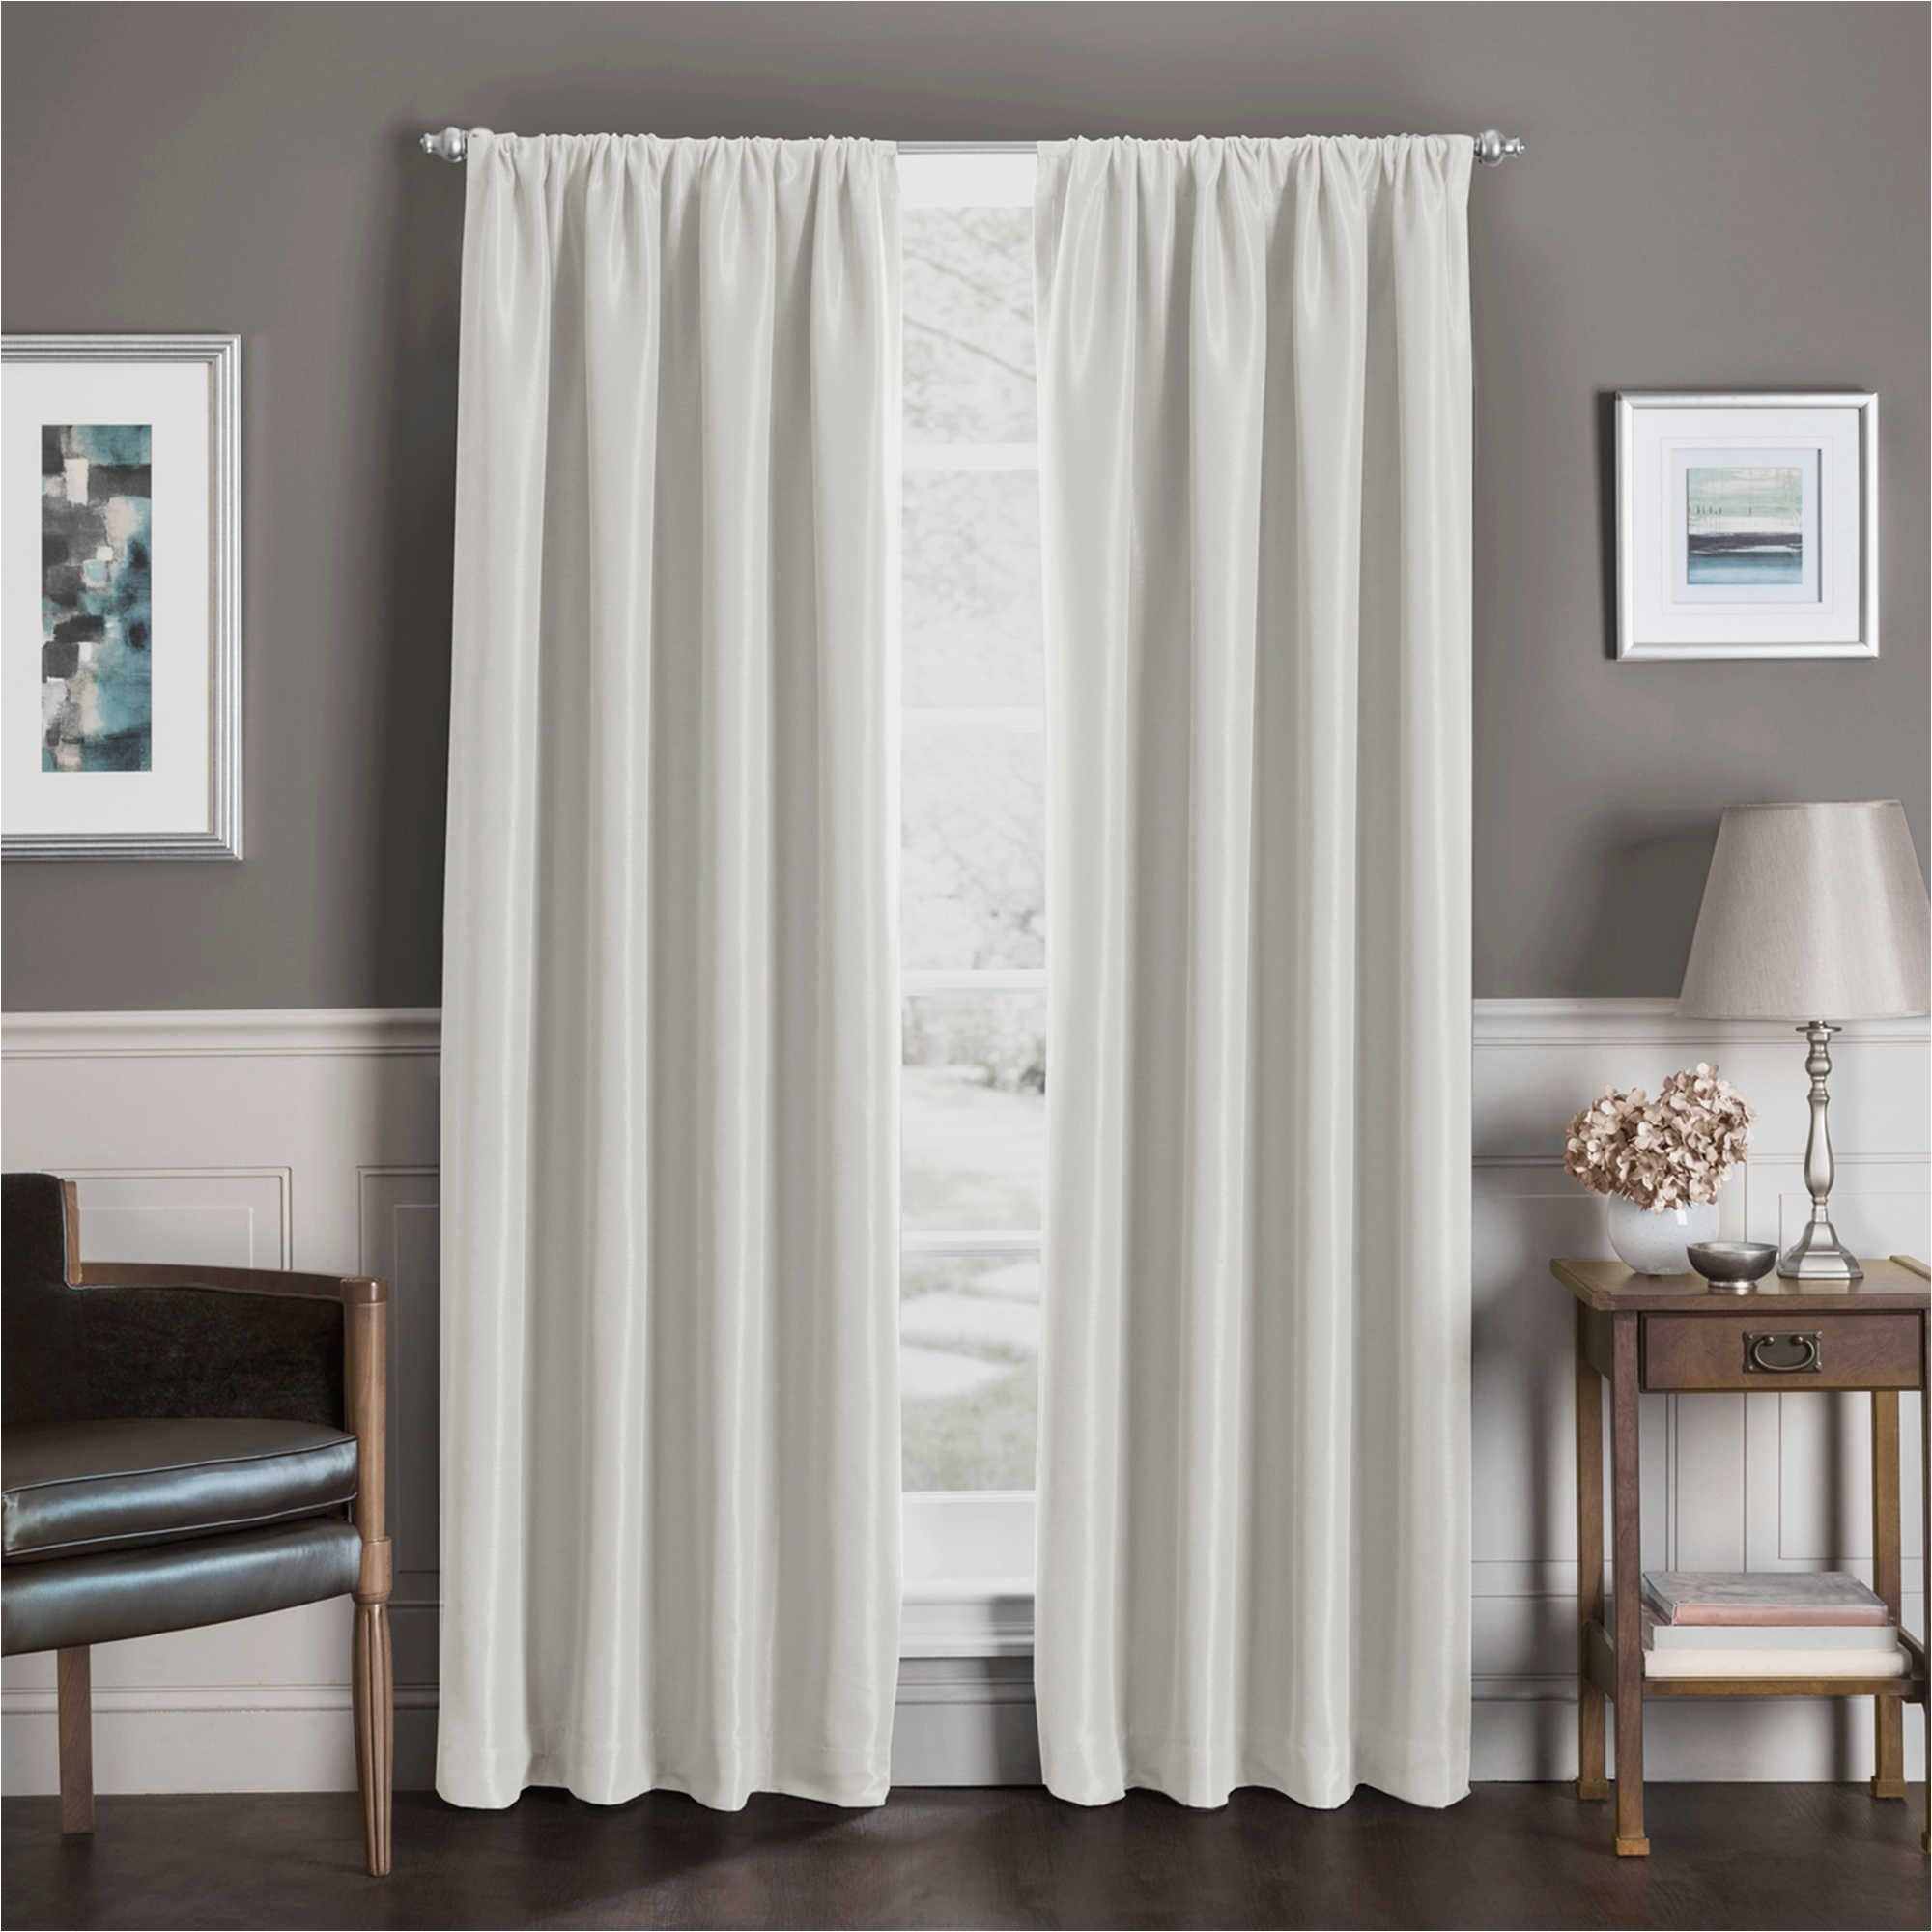 108 Inch Curtains Bed Bath Beyond total Blackout Curtains Bed Bath and Beyond Curtain